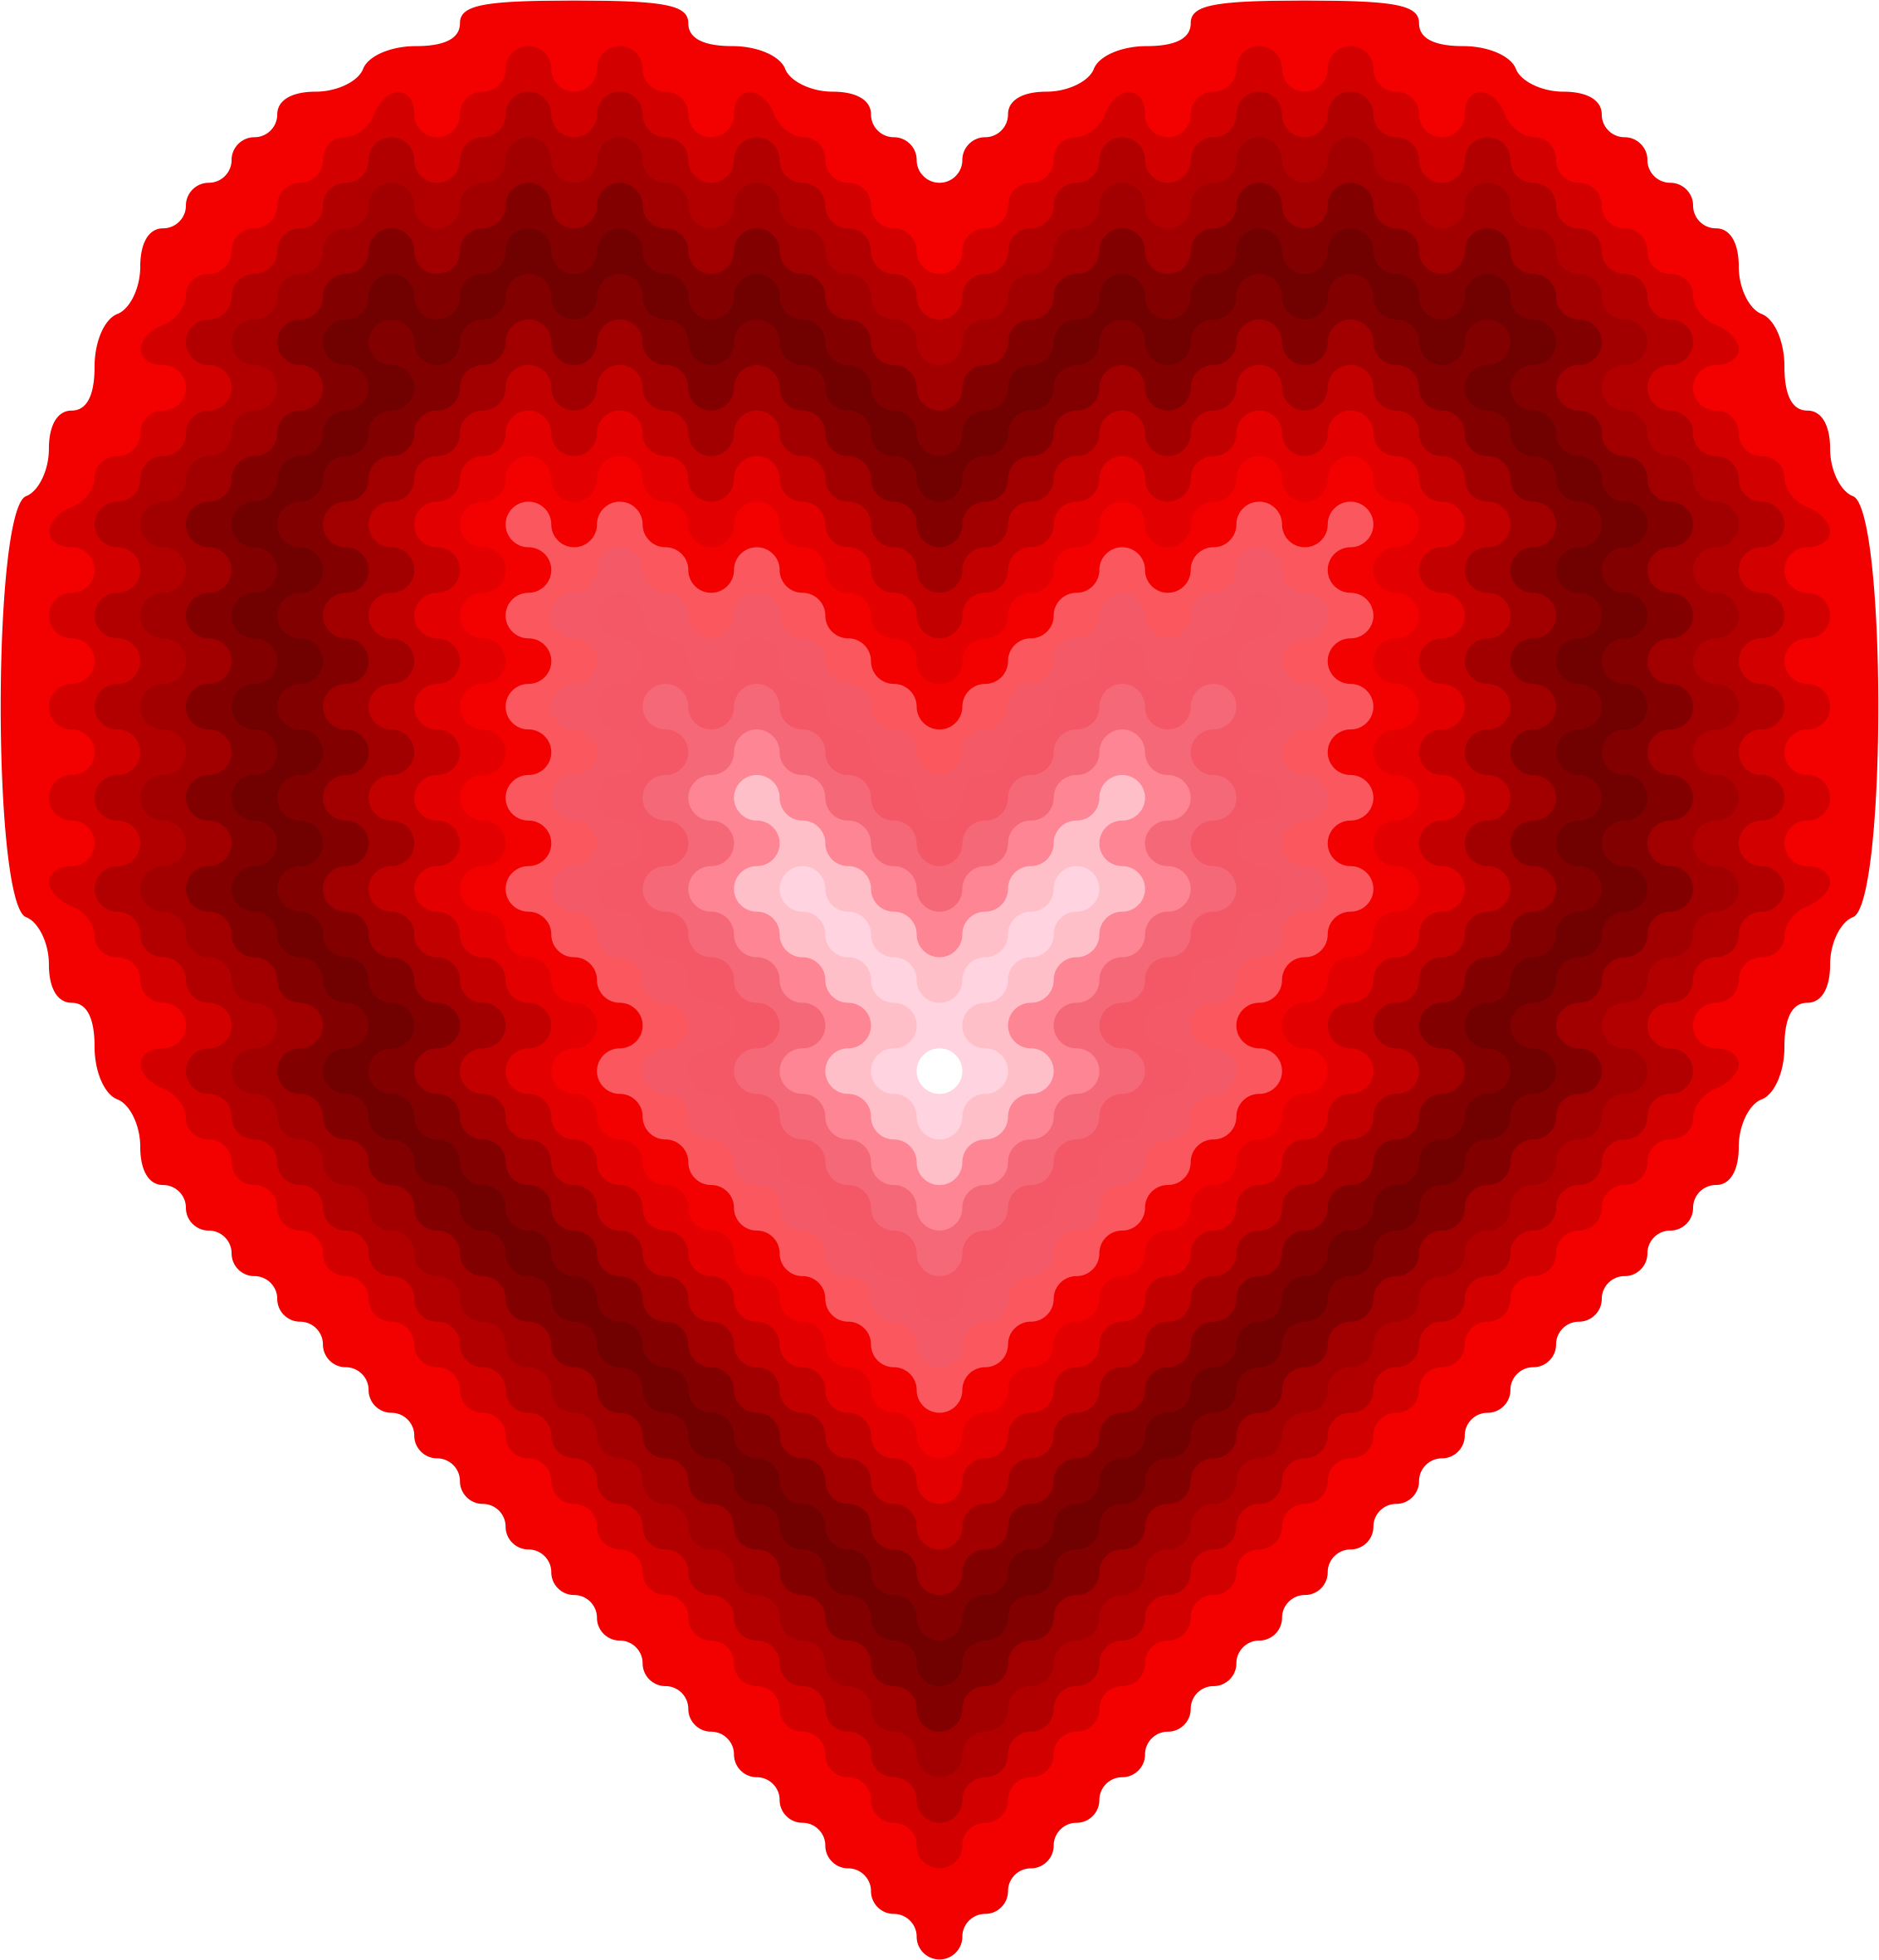 Heart clipart wave, Heart wave Transparent FREE for download.